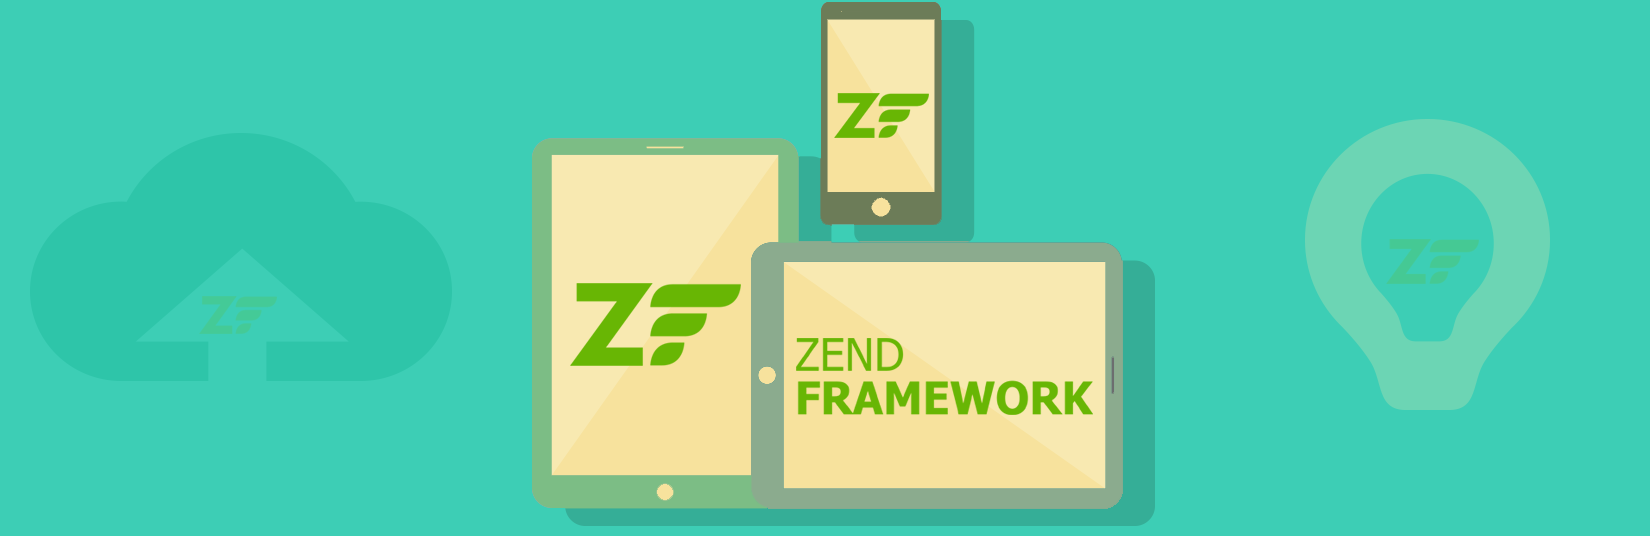 Zend Framework – The Master Architect for Web Applications Development